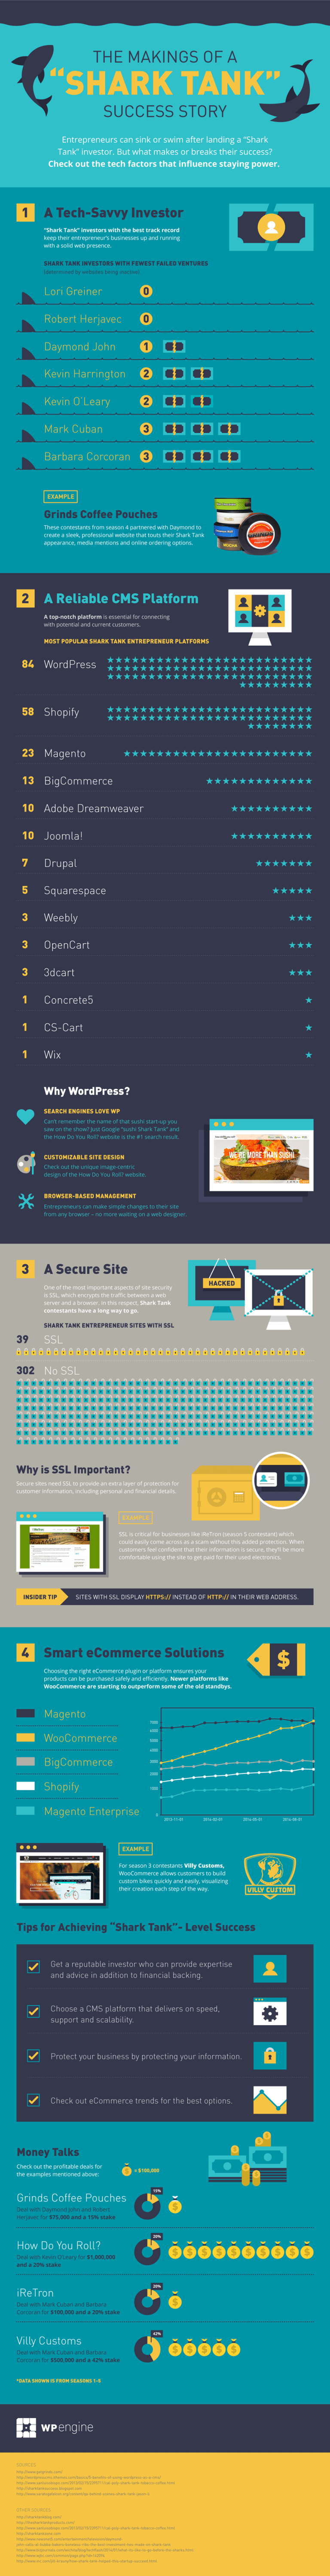 Run-Website-Like-Shark-Tank-Infographic